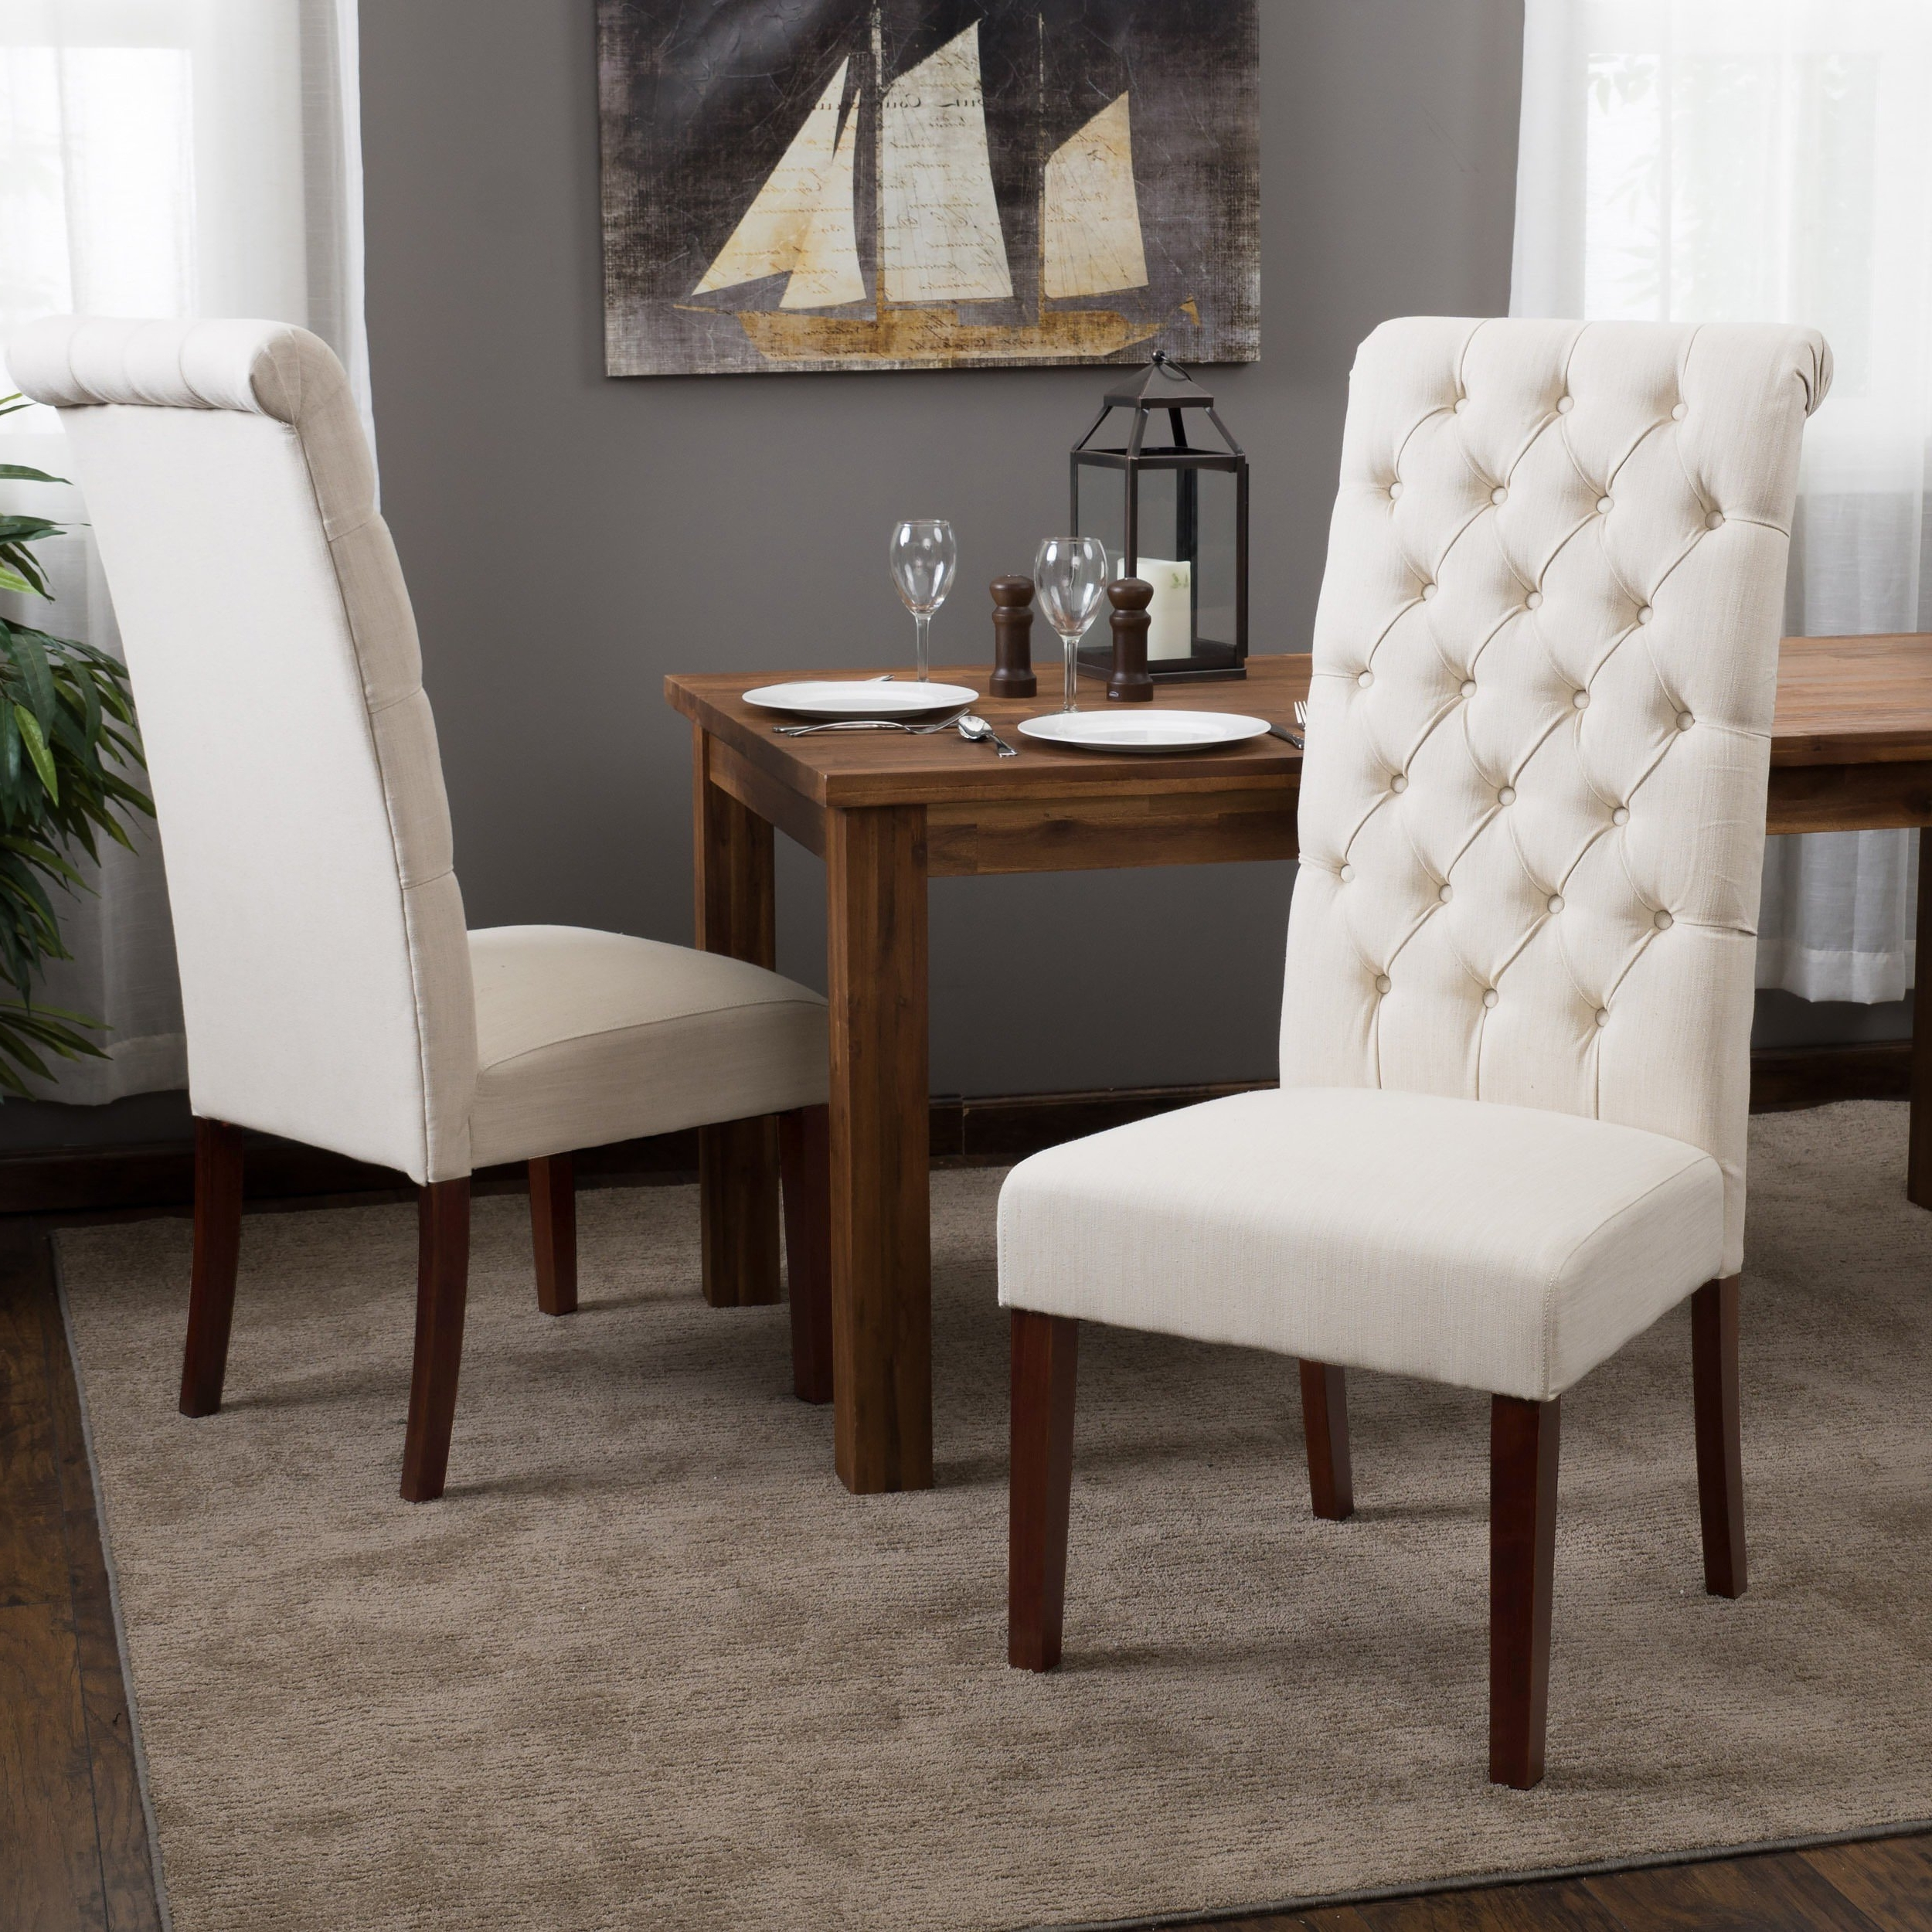 Popular Caira Black 5 Piece Round Dining Sets With Diamond Back Side Chairs Throughout Shop Tall Natural Tufted Fabric Dining Chair (Set Of 2) (Gallery 16 of 25)